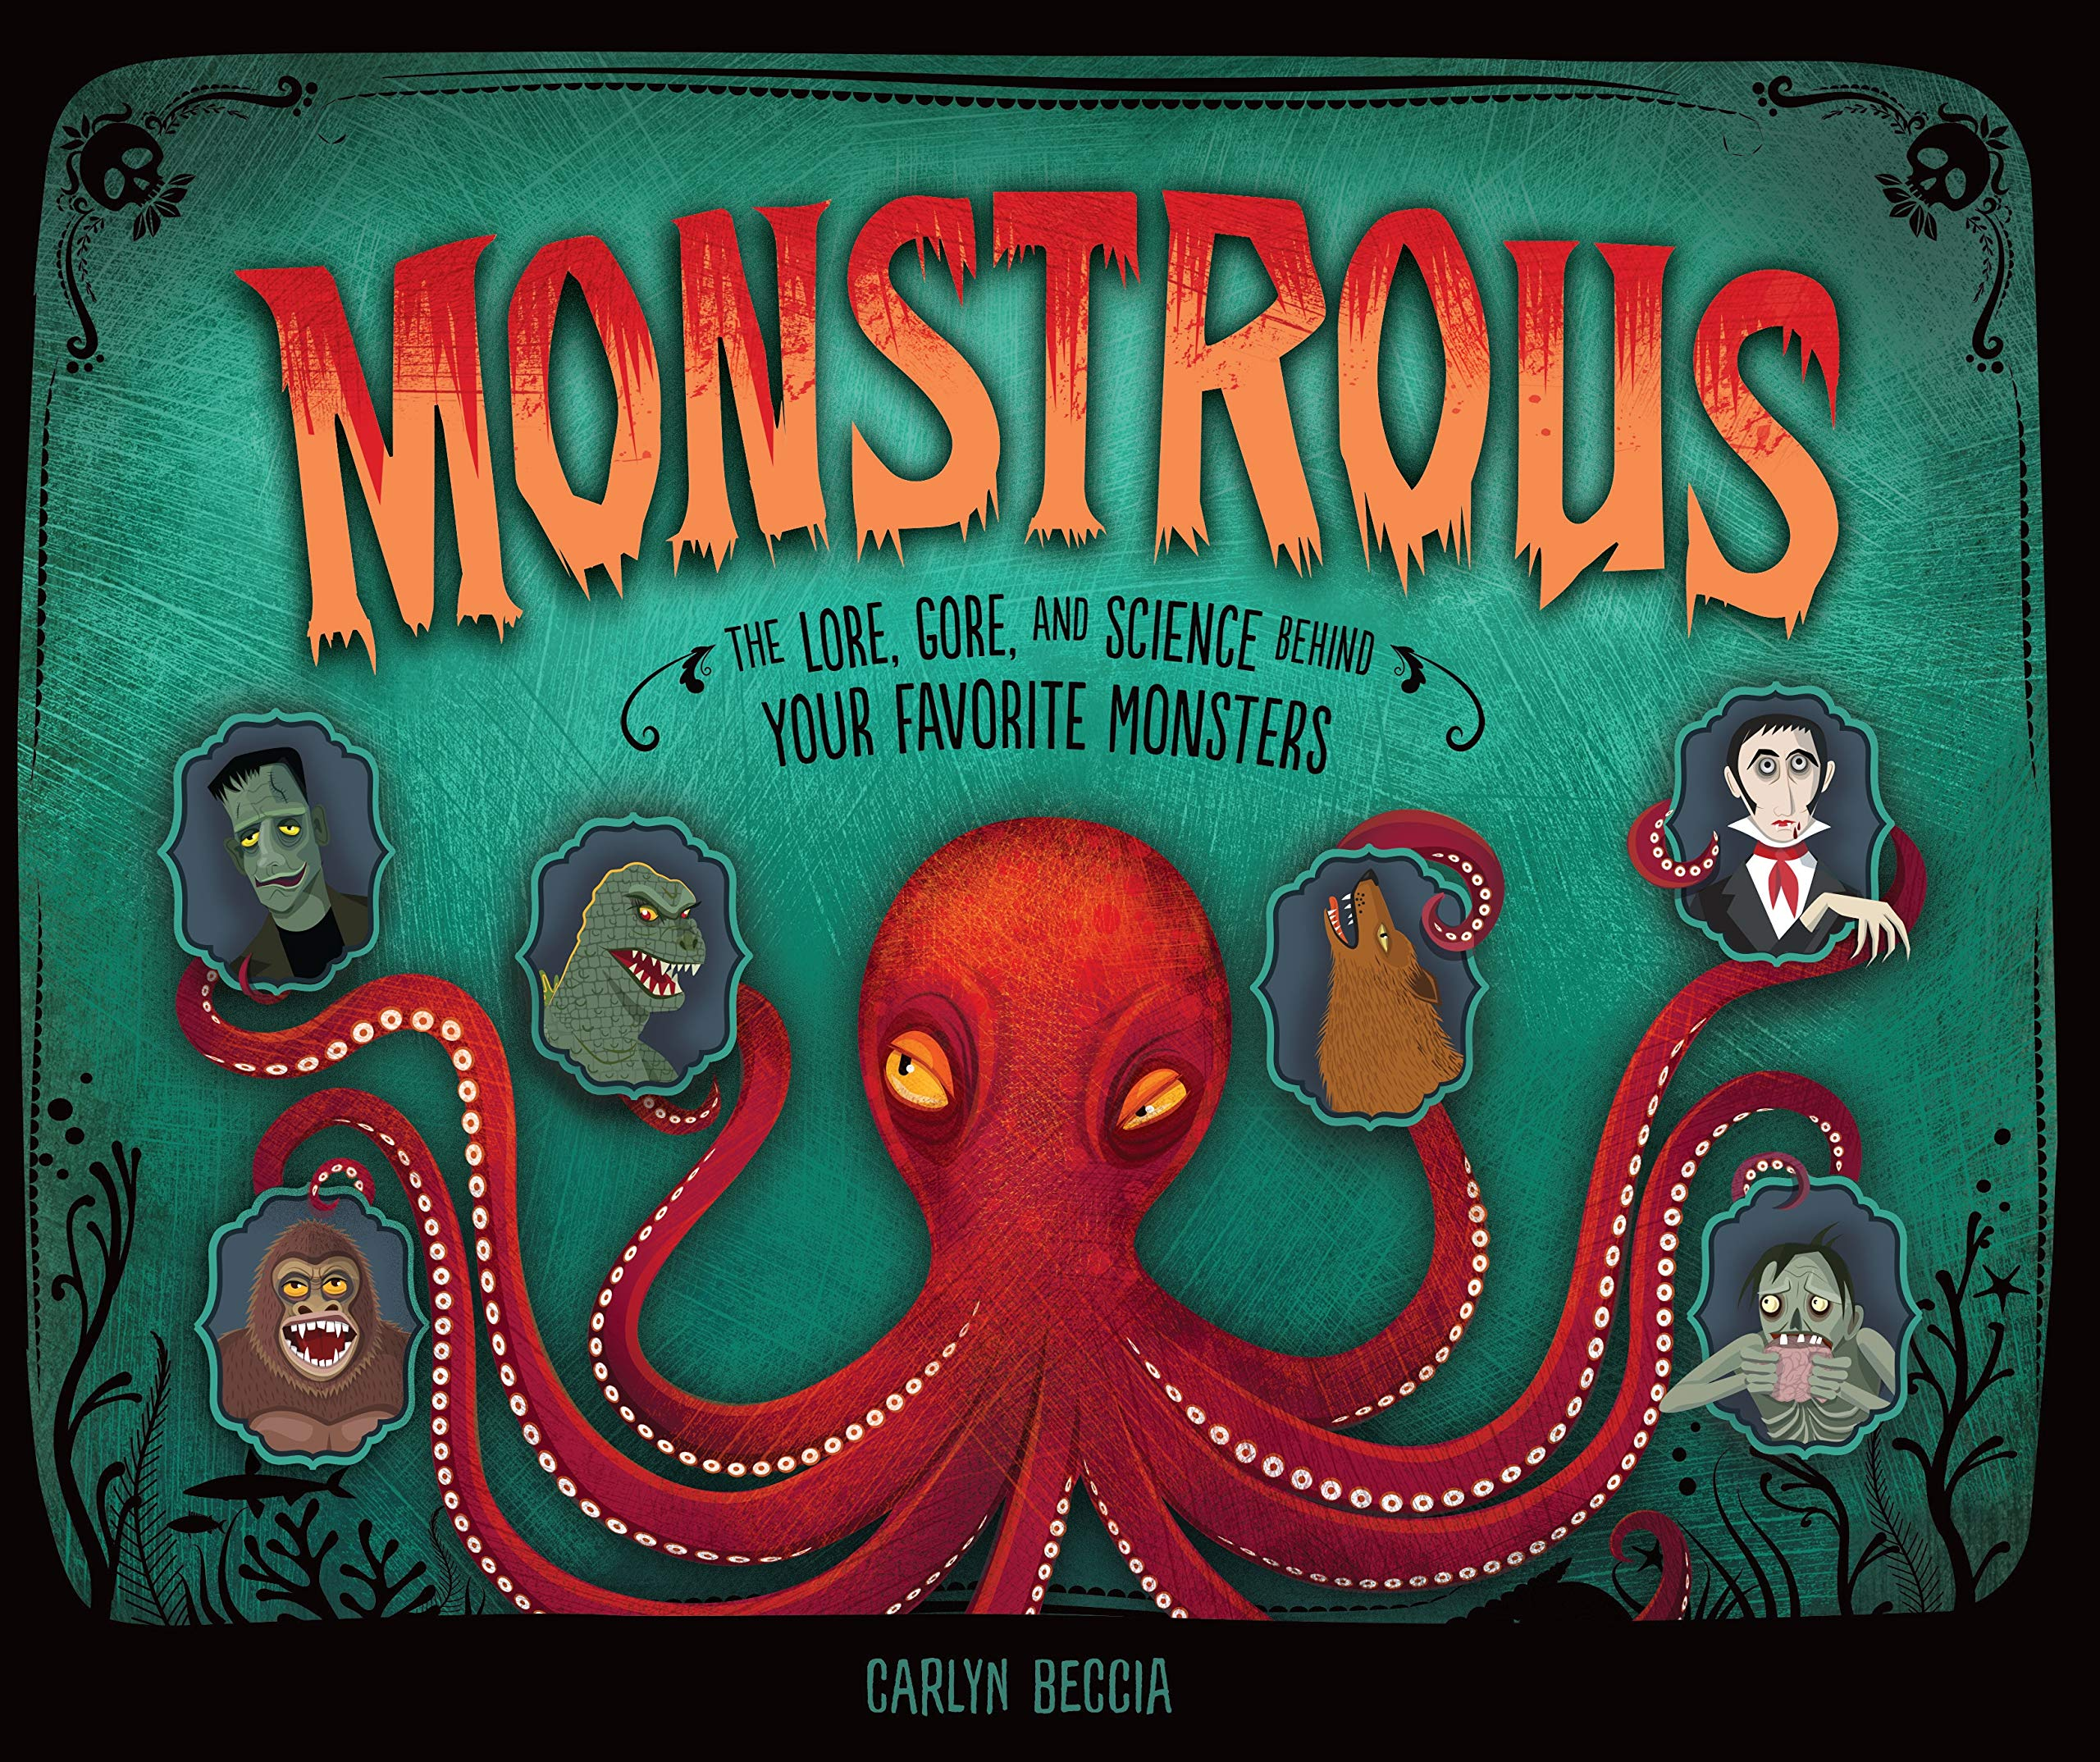 A surprisingly in-depth appraisal of monster science.